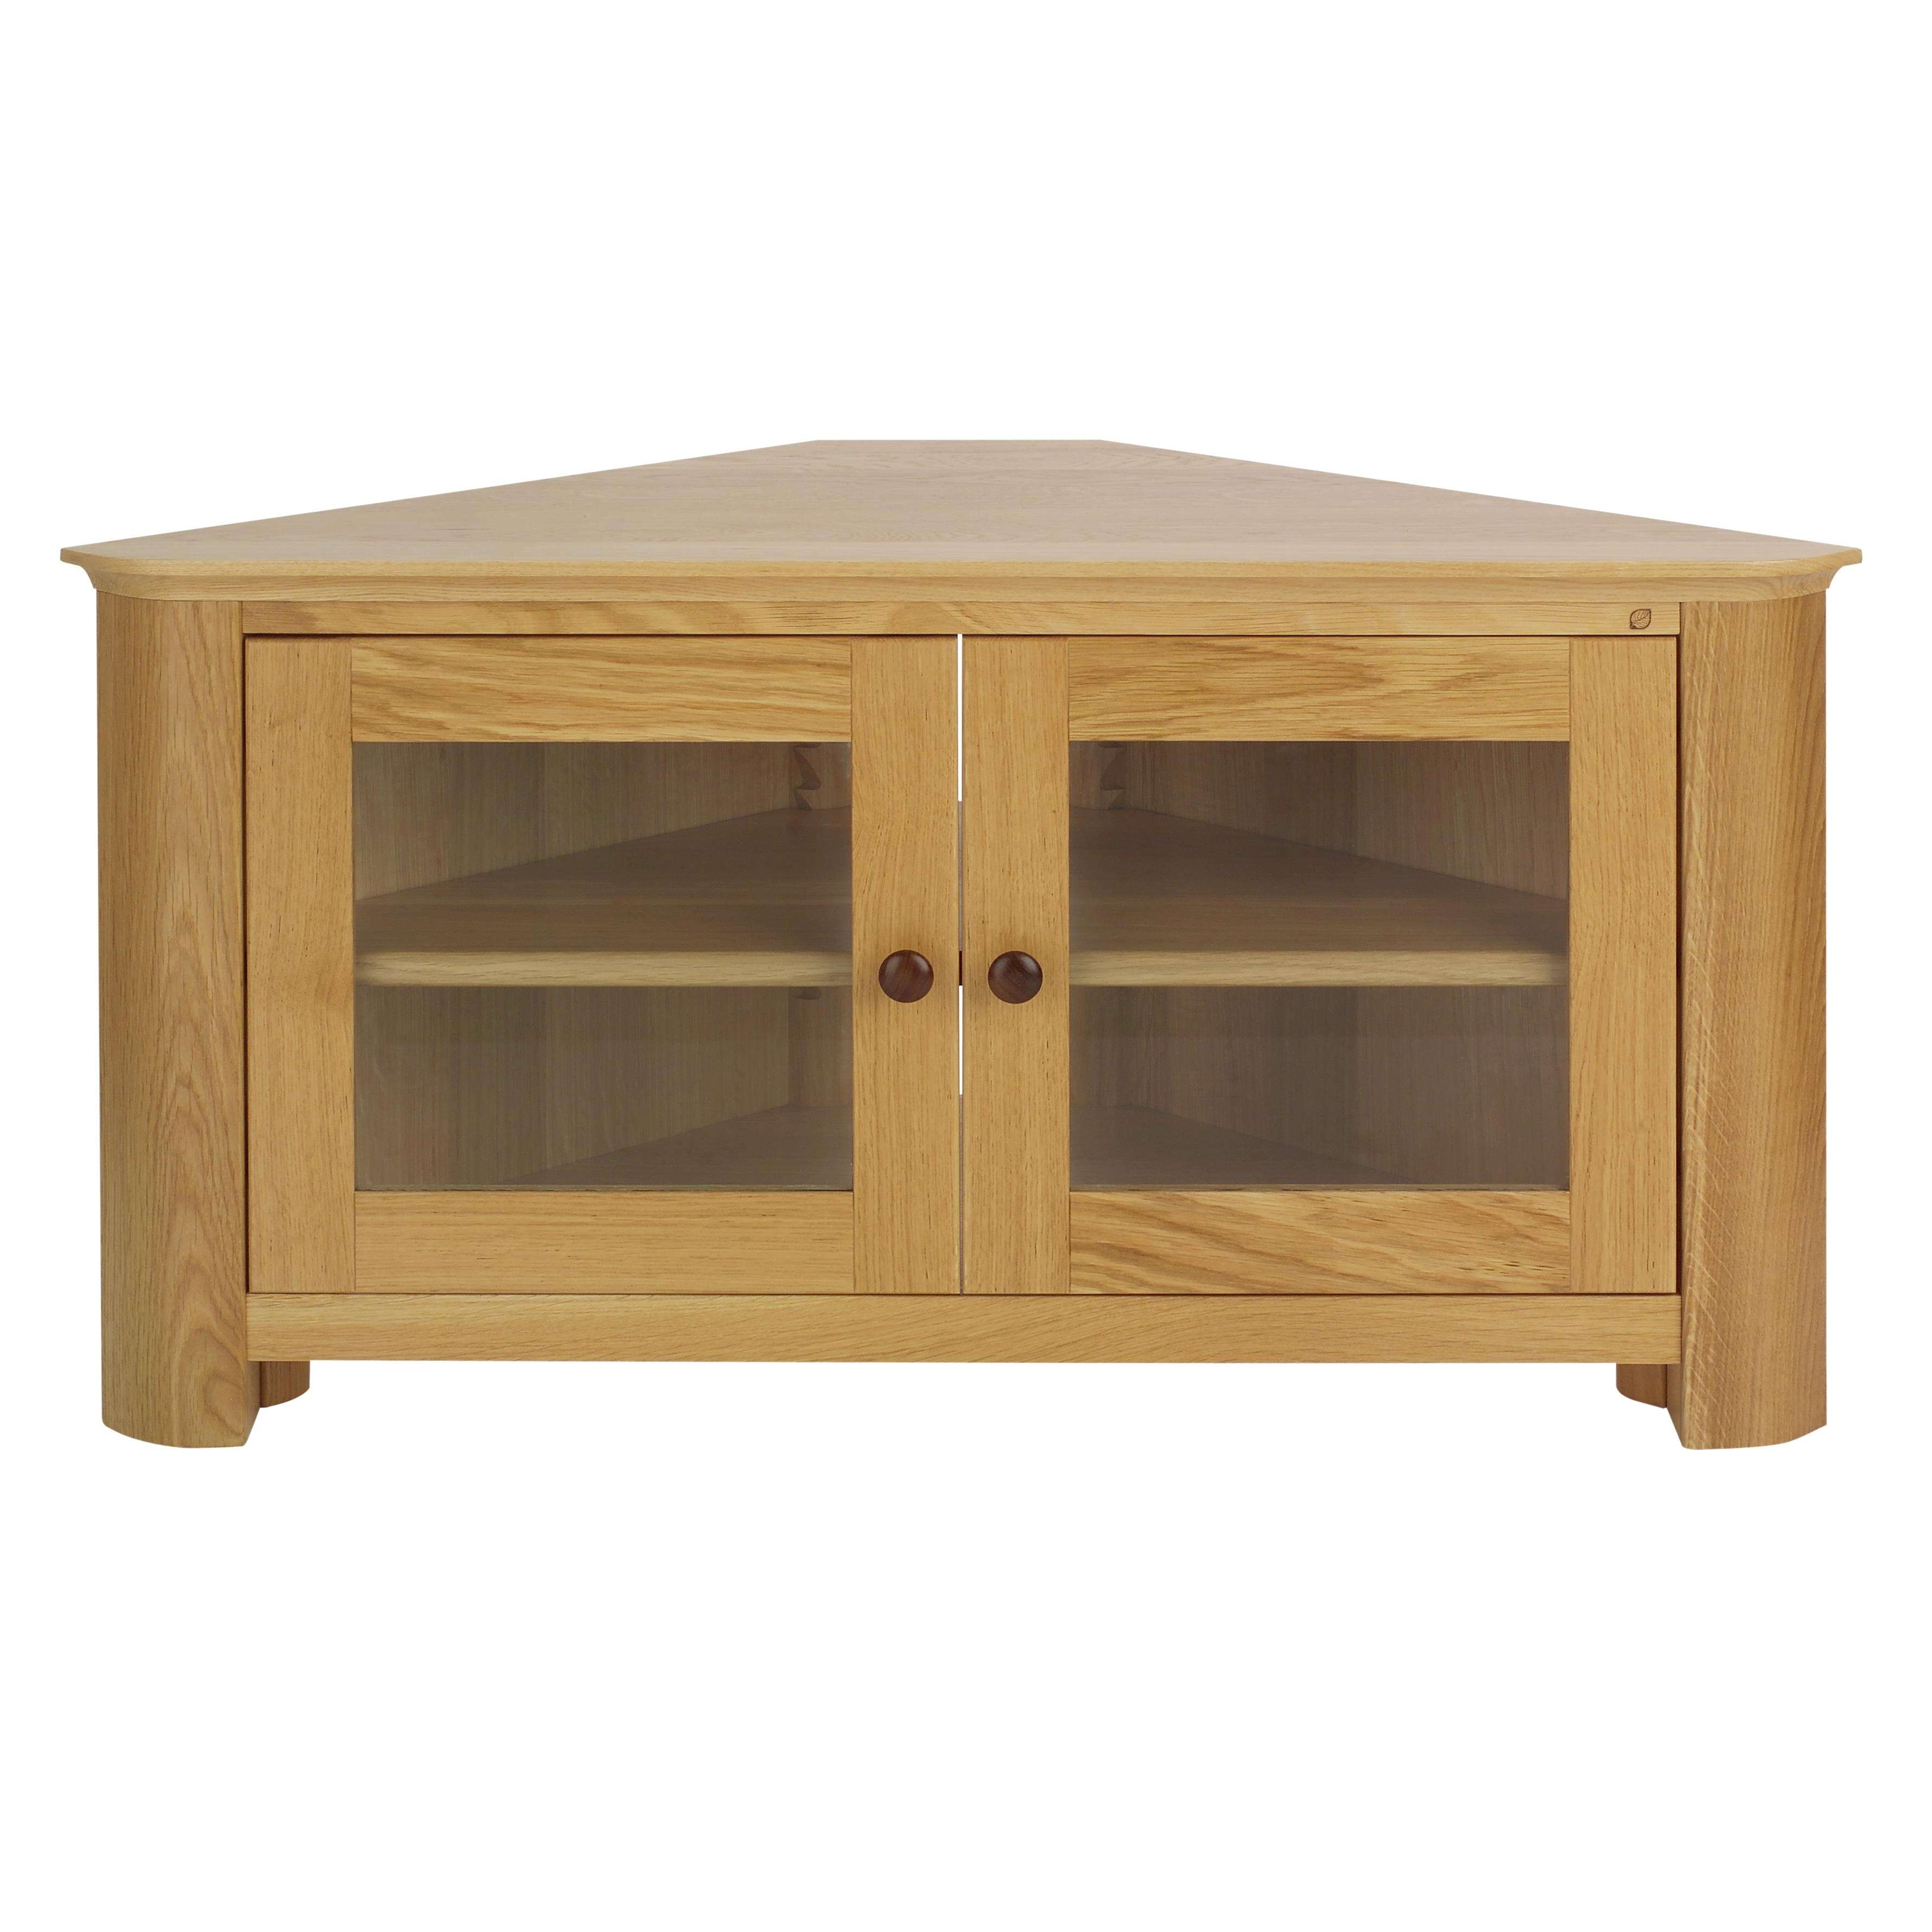 Media Cabinets With Doors Furniture Un Varnish Teak Wood Cabinet Within Glass Tv Cabinets With Doors (View 5 of 20)